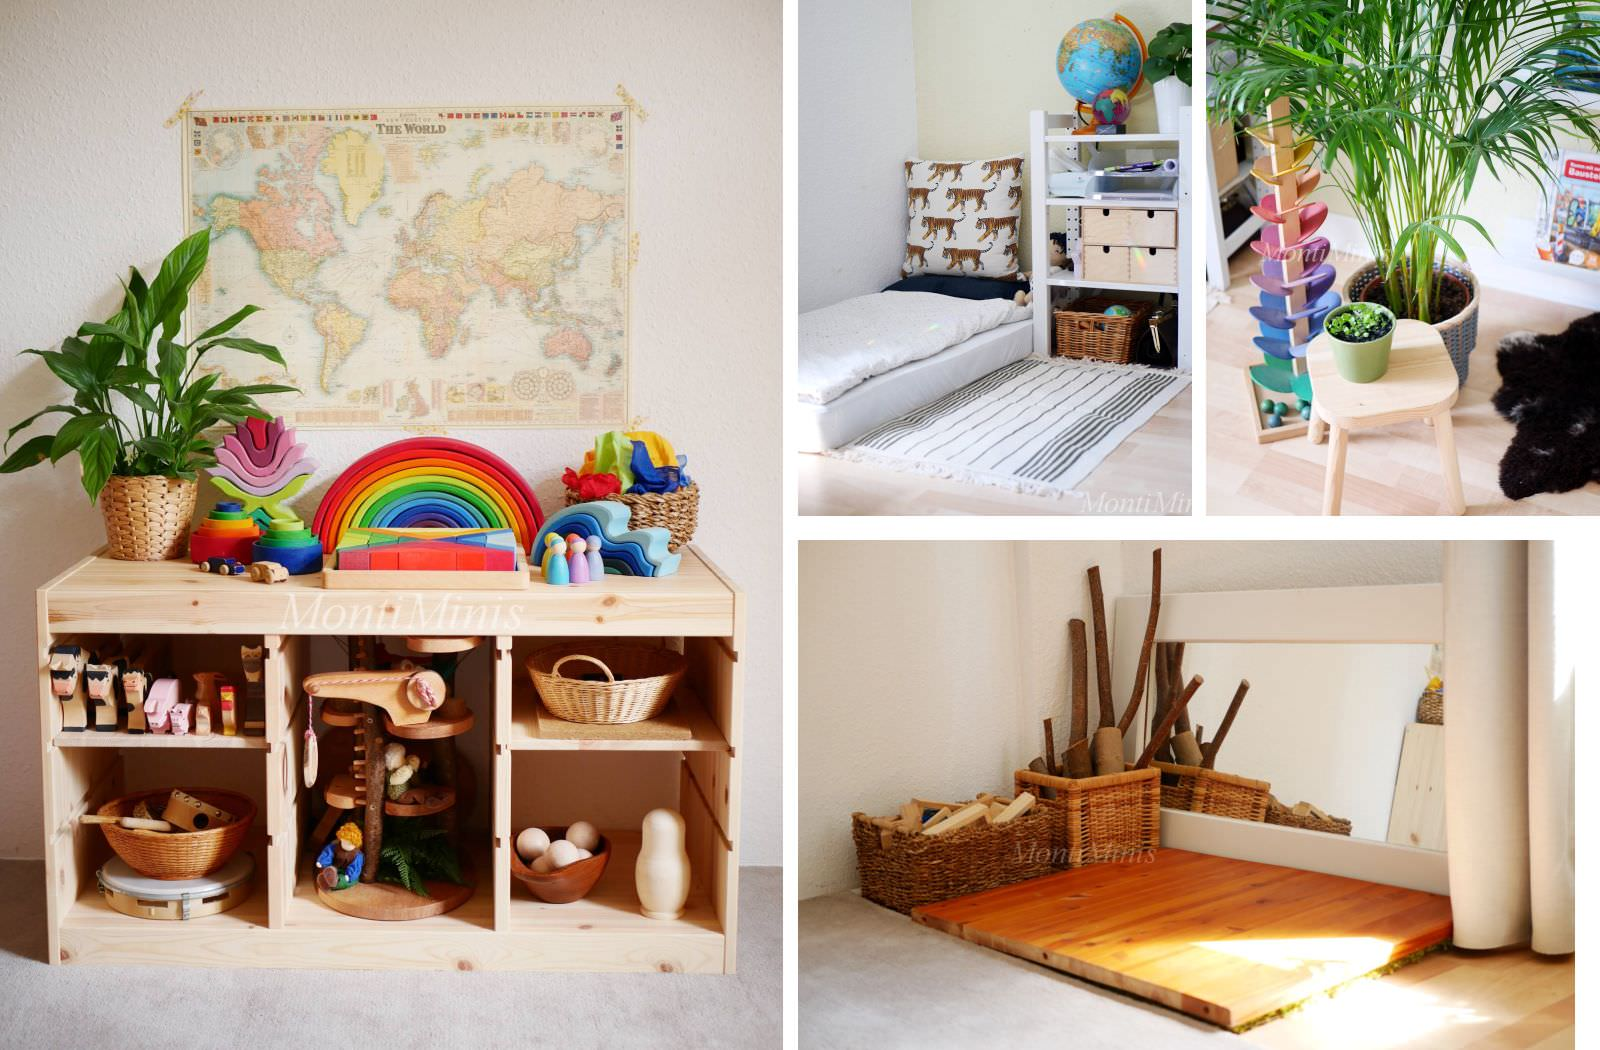 Neues Aus Michels Kinderzimmer Update Mai 2018 Montessori Blog Shop Montiminis